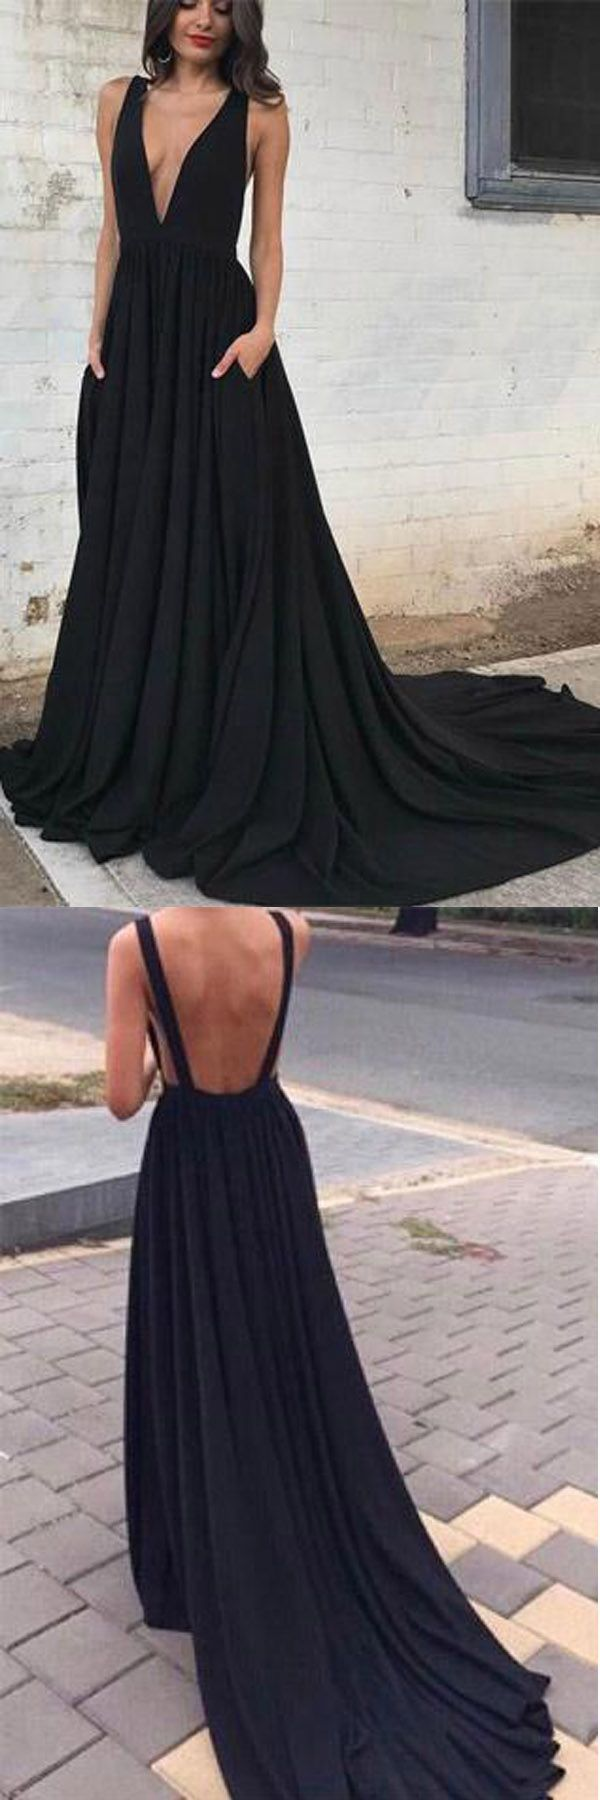 Simple black chiffon backless deep v neck a line long prom dress